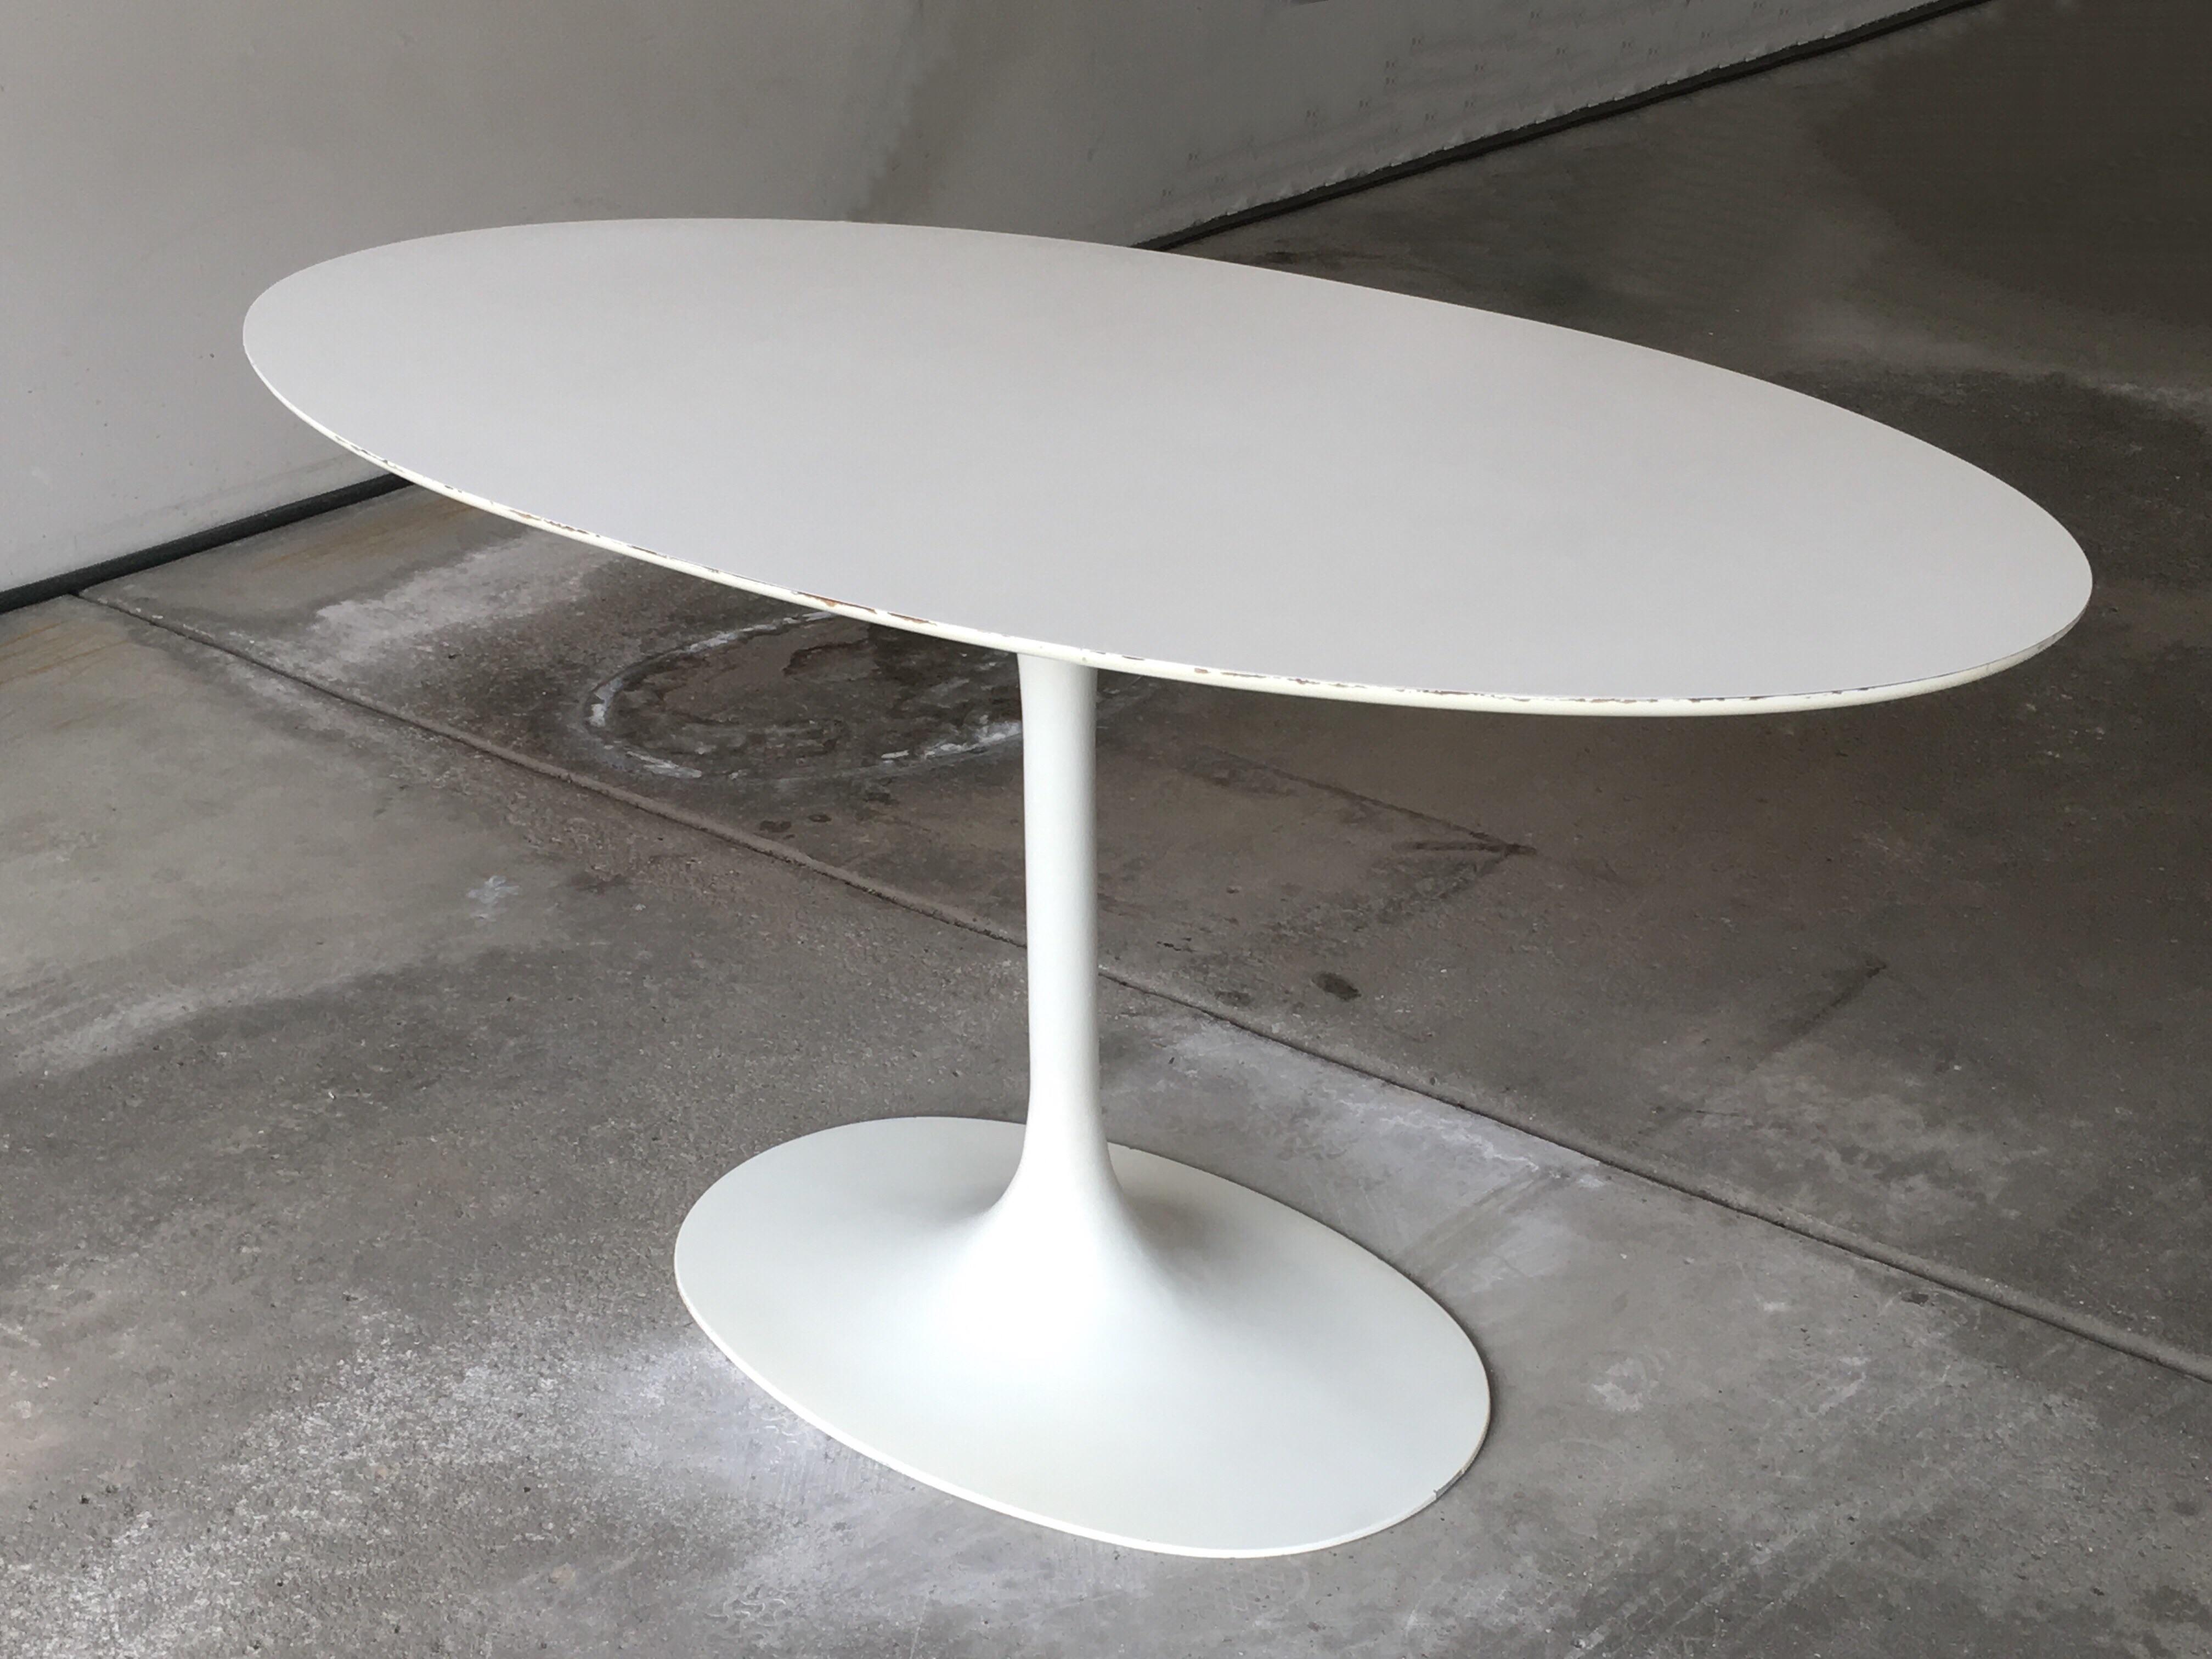 Exceptionnel Mid Century Oval Tulip Table In The Style Of Eero Saarinen For Knoll. May Be